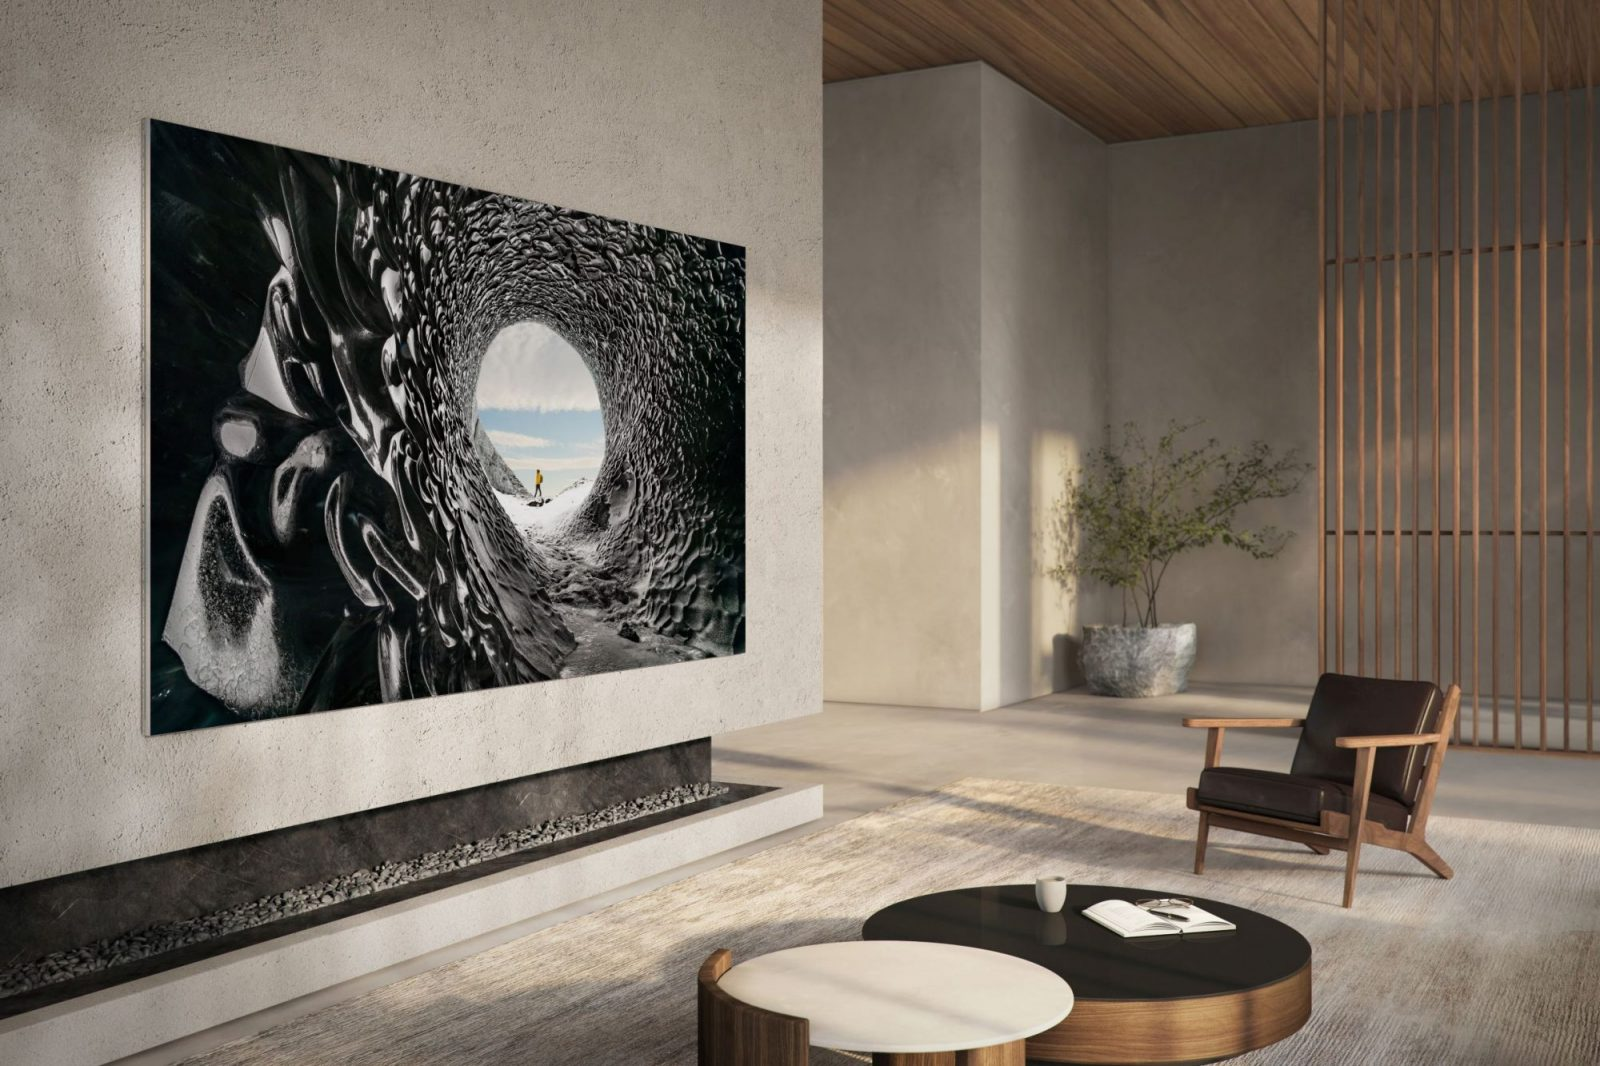 Samsung's new 110-inch MicroLED TV will be available early 2021